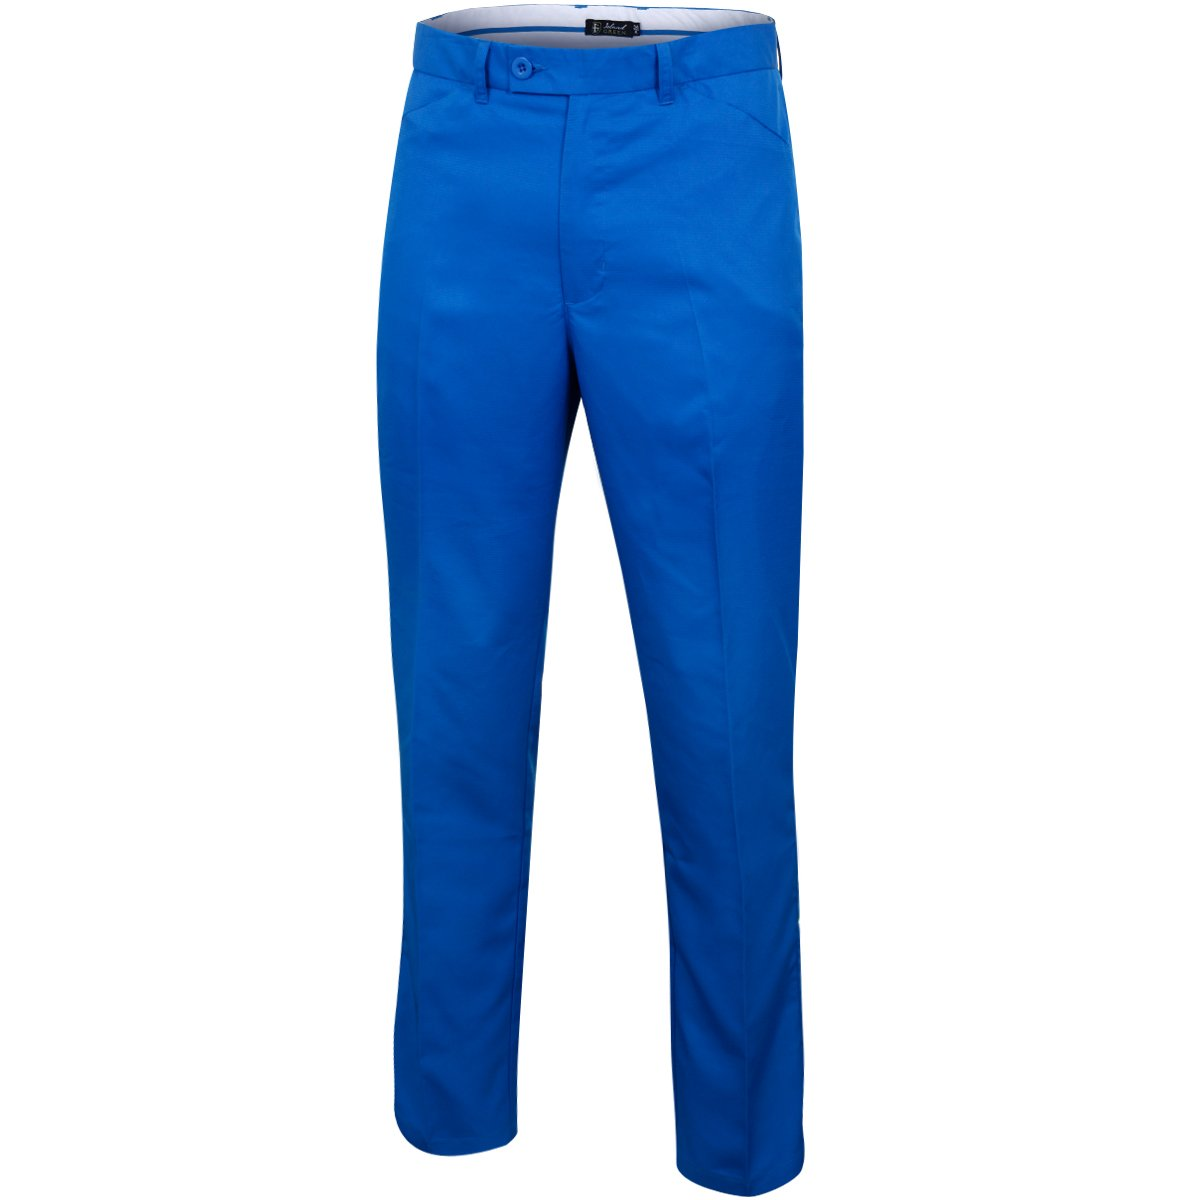 Island Green IGPNT1855 Mens Tapered Trouser French Navy W32 REG Pantalones, Hombre, 32R